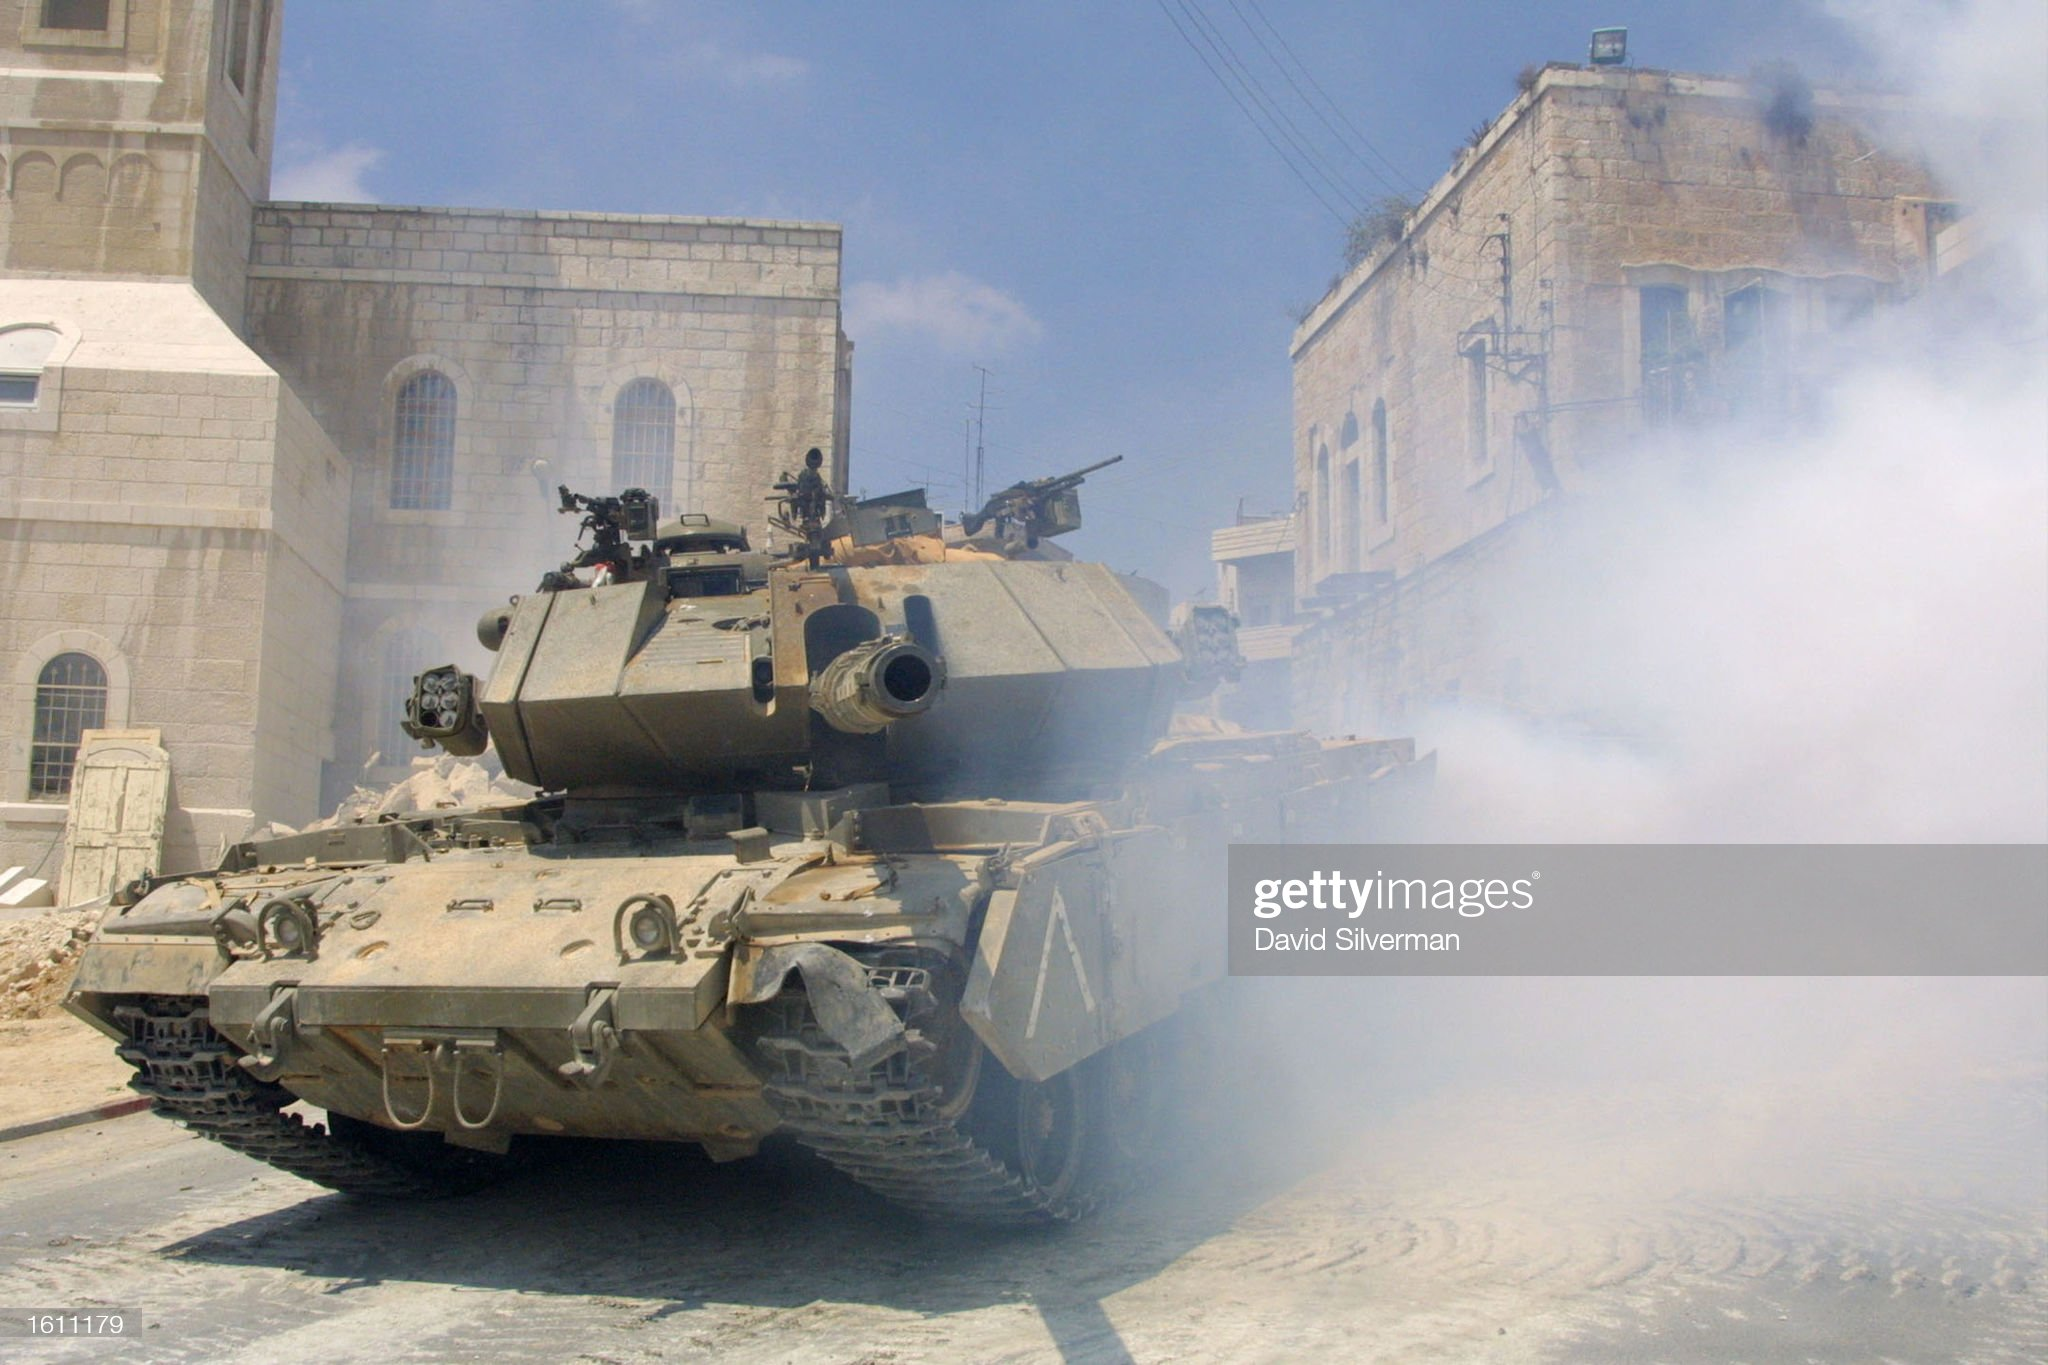 https://media.gettyimages.com/photos/an-israeli-tank-emerges-from-a-smoke-screen-as-it-changes-position-a-picture-id1611179?s=2048x2048